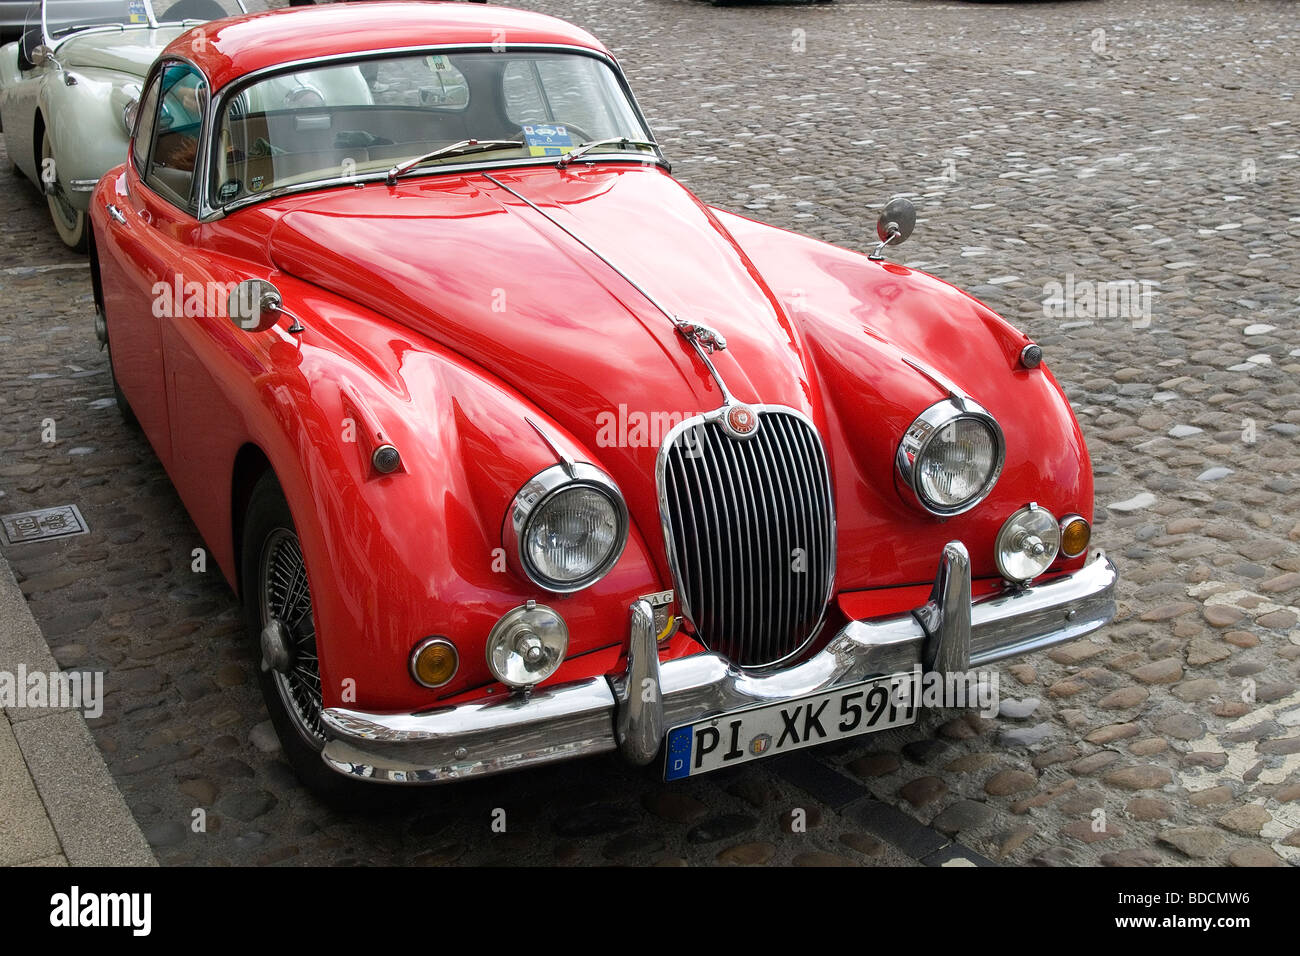 A Red German Registered Jaguar XK150 Sports Car Parked In Richmond Nort  Yorkshire Summer 2009